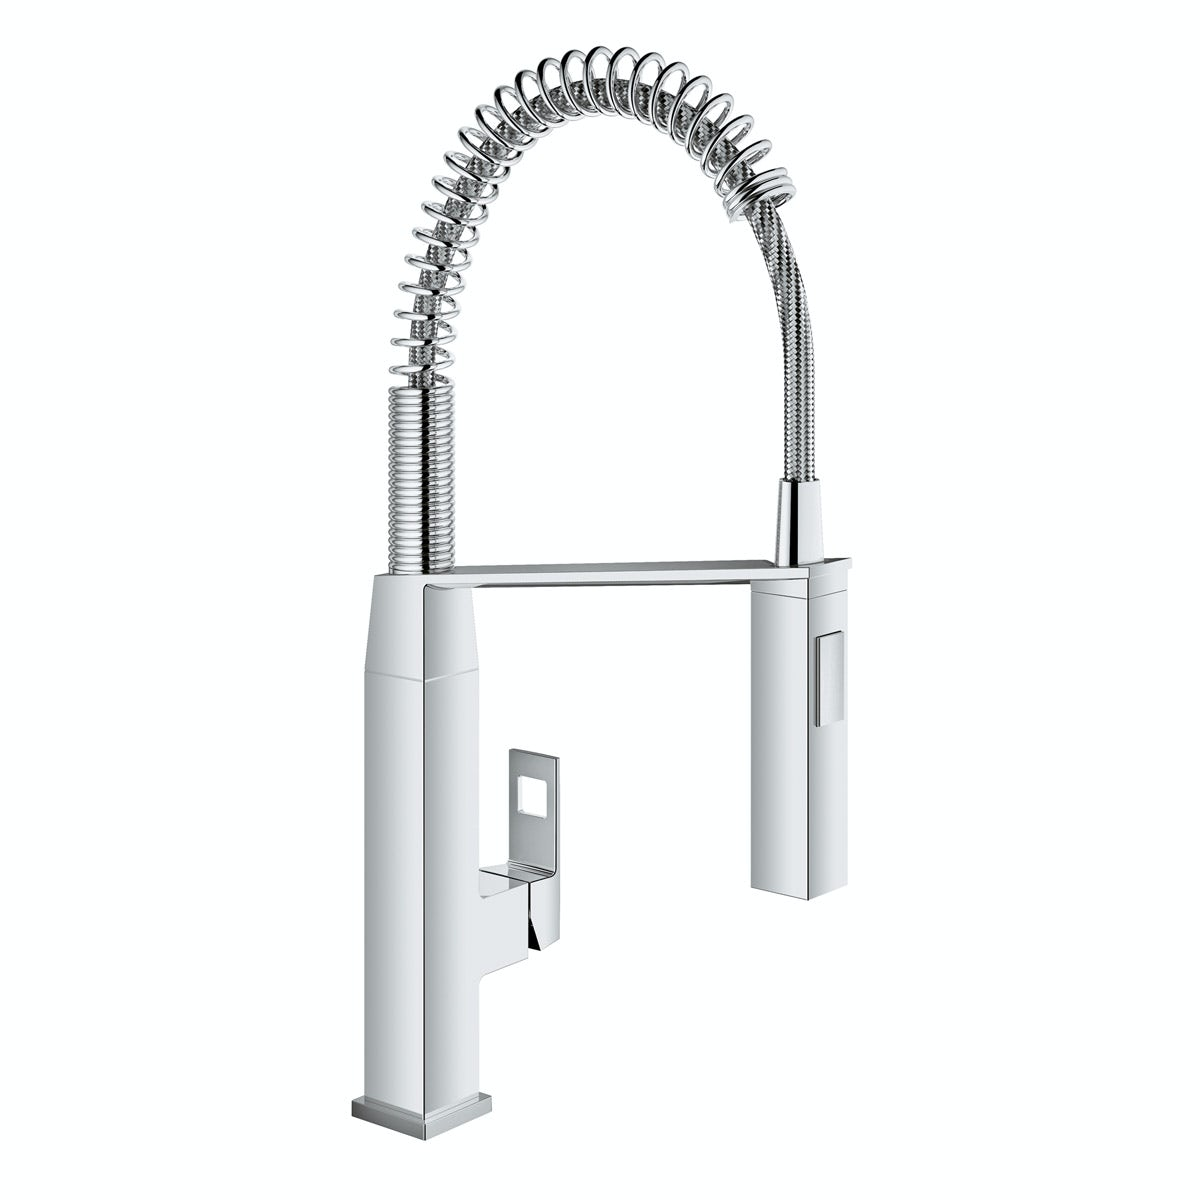 Grohe Eurocube Profi-spray kitchen tap with pull down spout